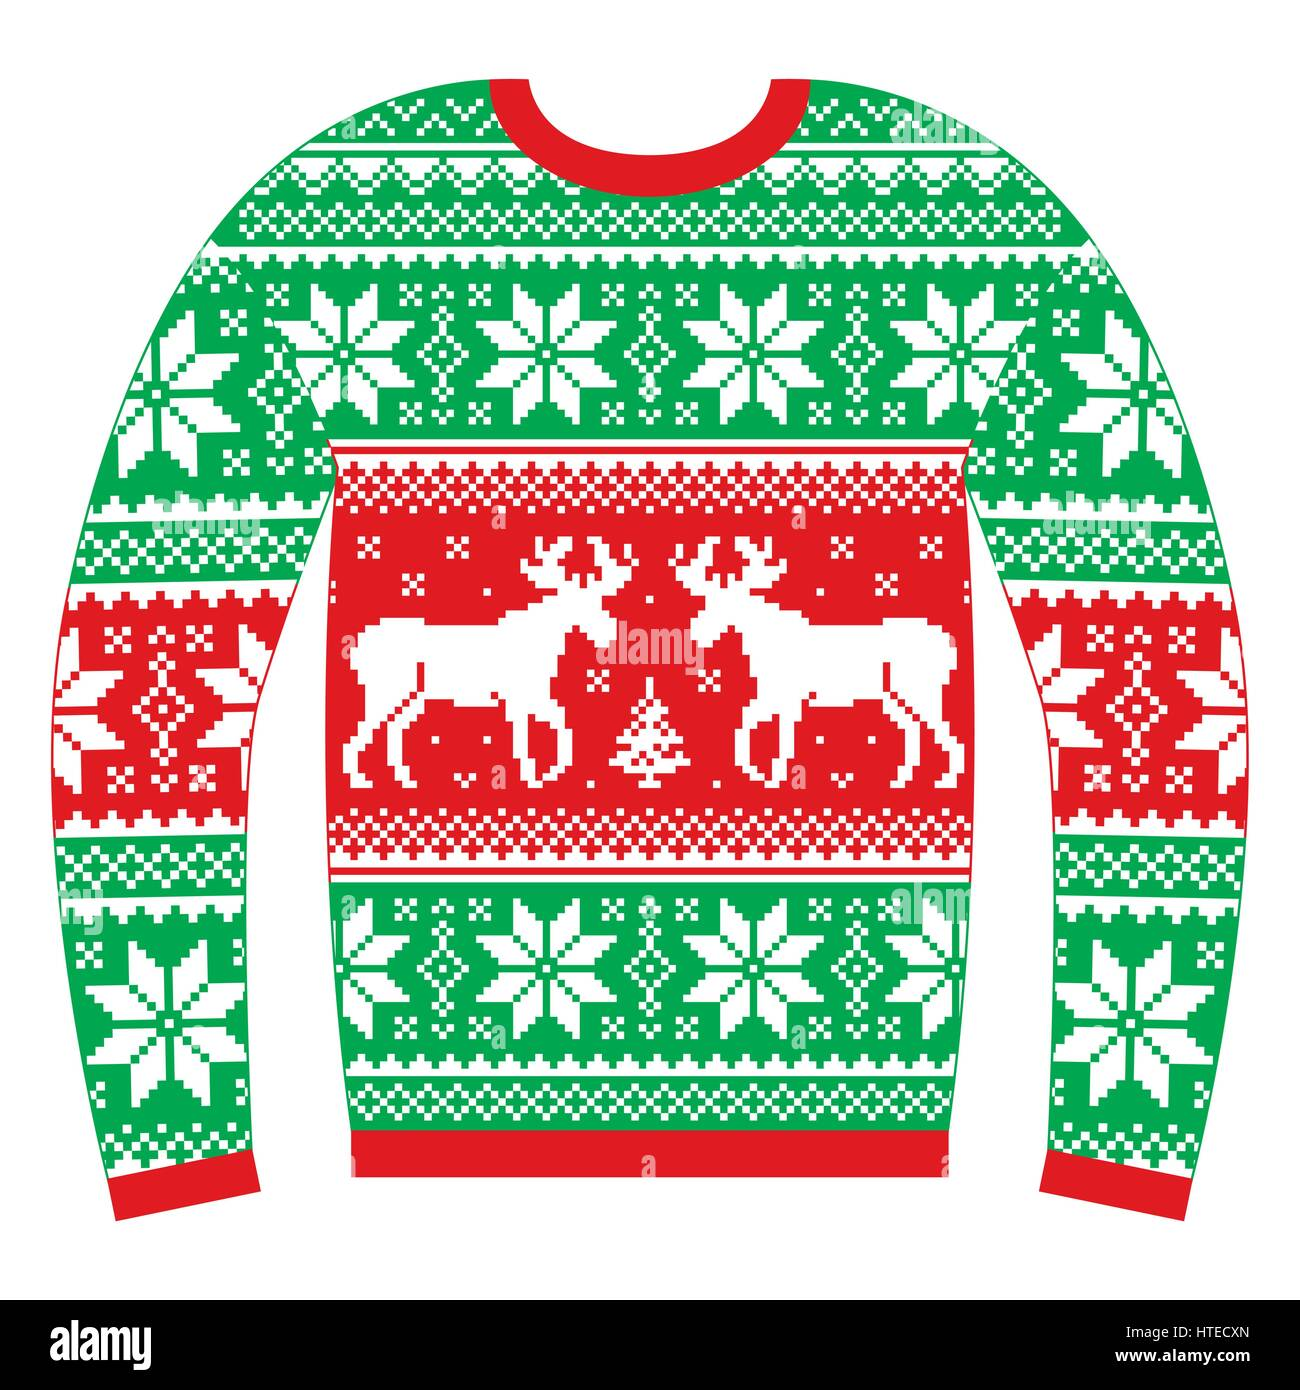 Ugly Christmas jumper or sweater with reindeer and snowflakes red ...